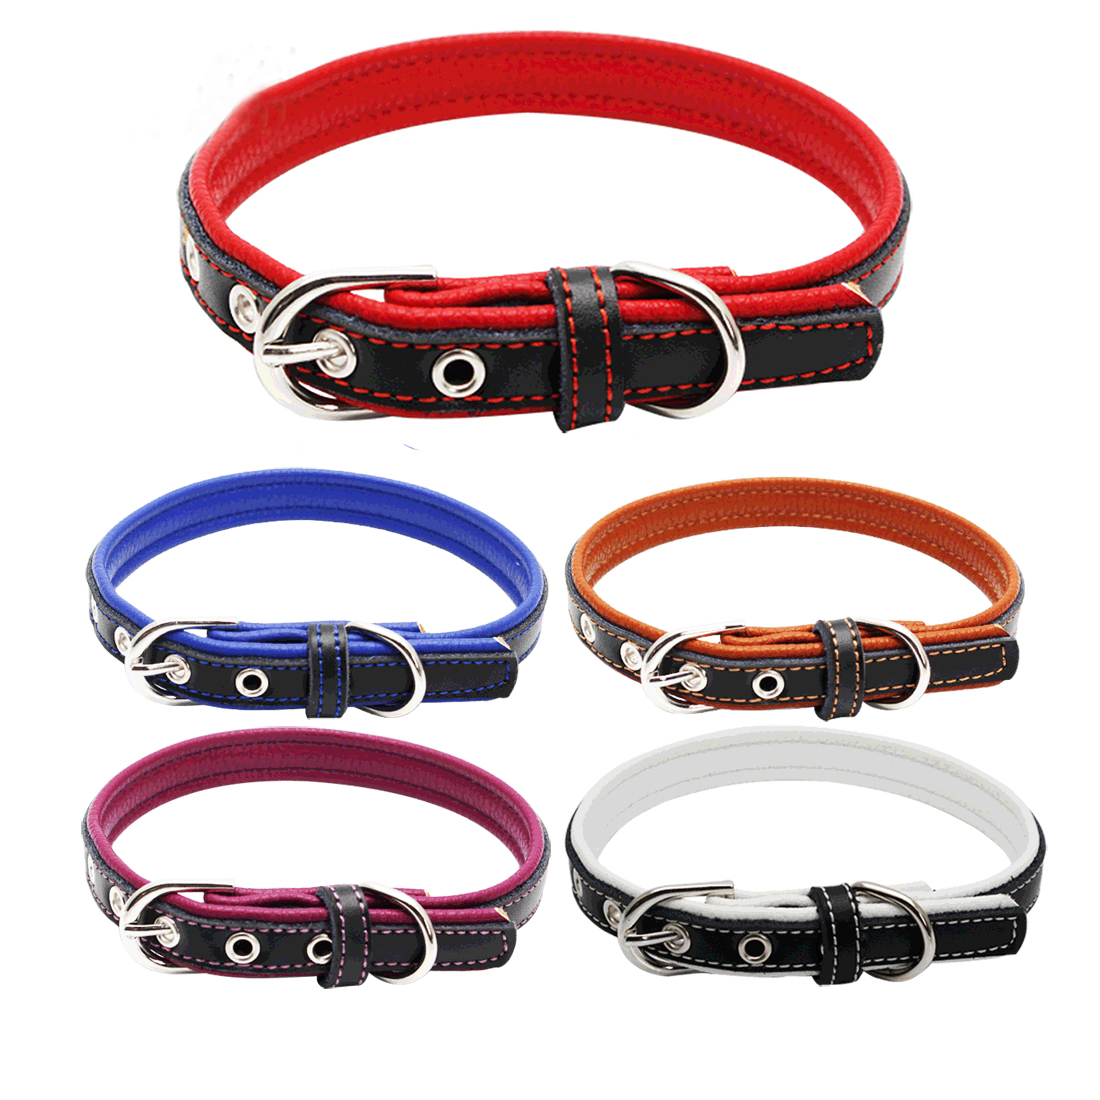 HOT Cool Rivets Studded Best Genuine Leather Pet Dog Collars For Dogs With Four Color Boxer Bulldog Pitbull XS S M L